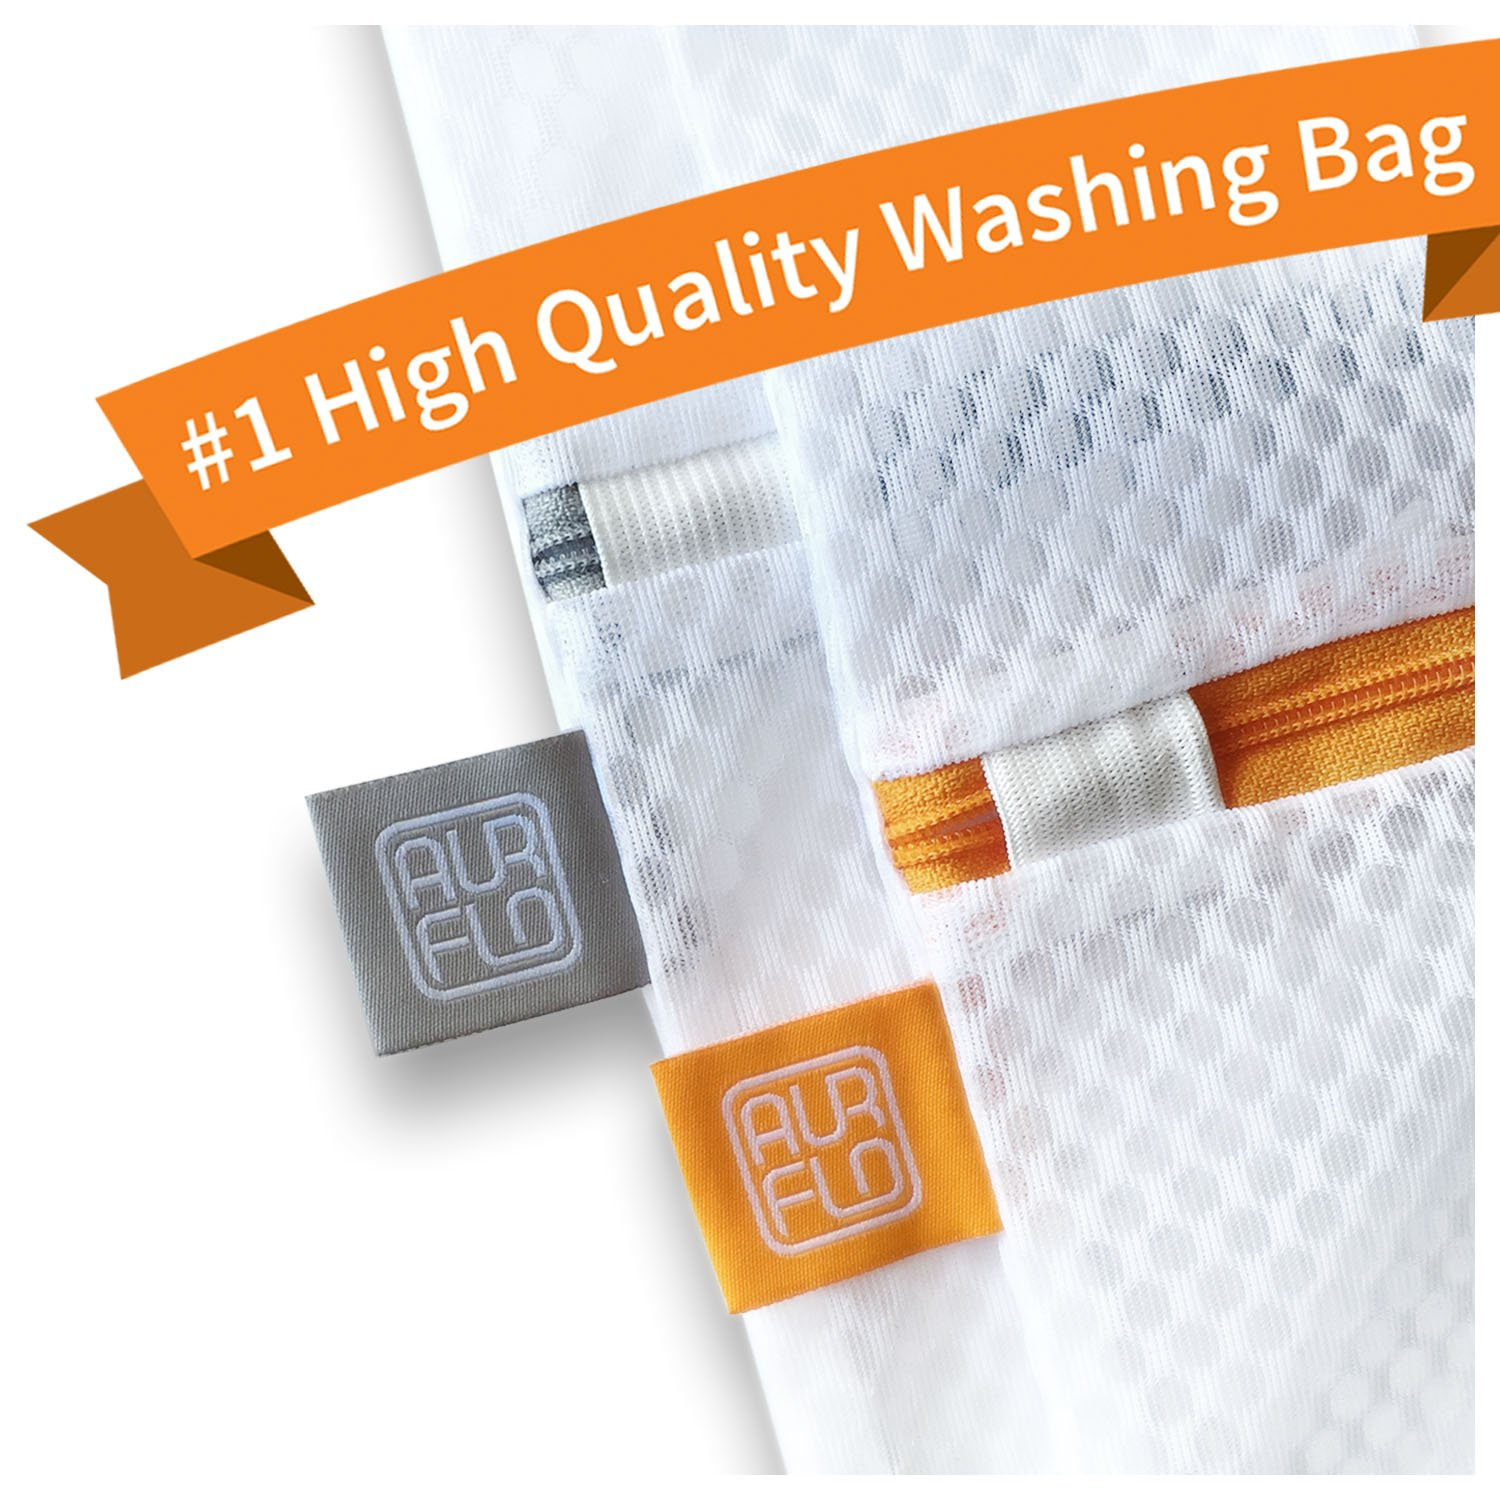 AURFLO Mesh Laundry Bag-Set of 2 Extra Large Heavy Duty Net with Zipper Lock, Color Coding and Hanging Loop-Safe Wash and Organizer for Travel, Lingerie, Gloves, Socks, Yoga Pants, Bra, Jeans, Sweater AX-AY-ABHI-77404